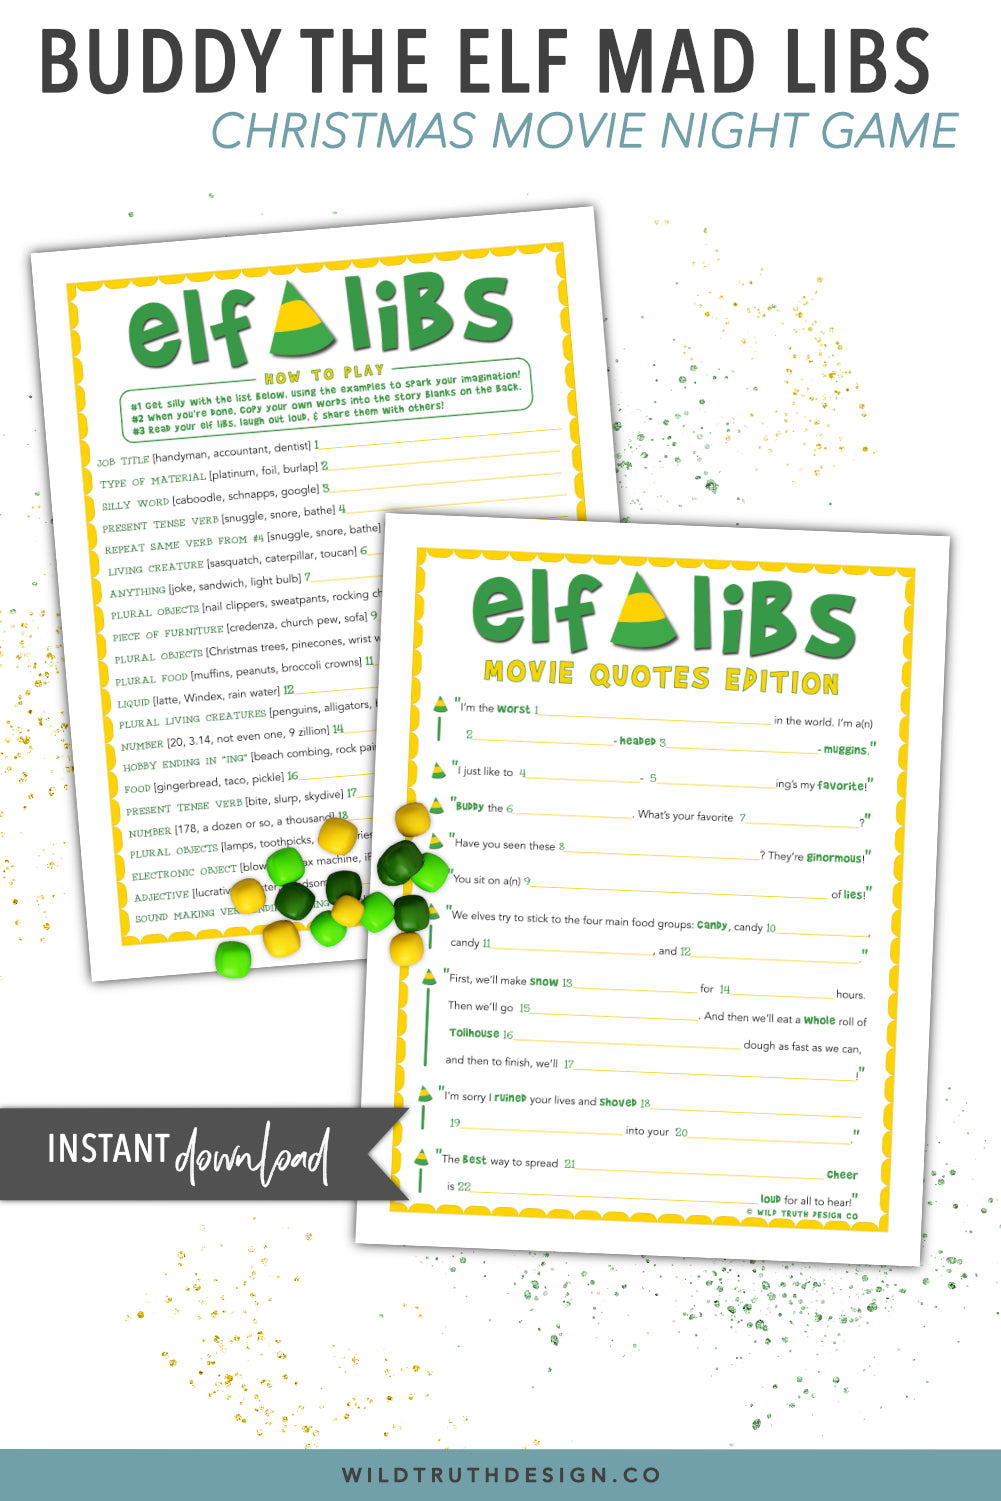 Buddy The Elf Mad Libs - Christmas Movie Night Game